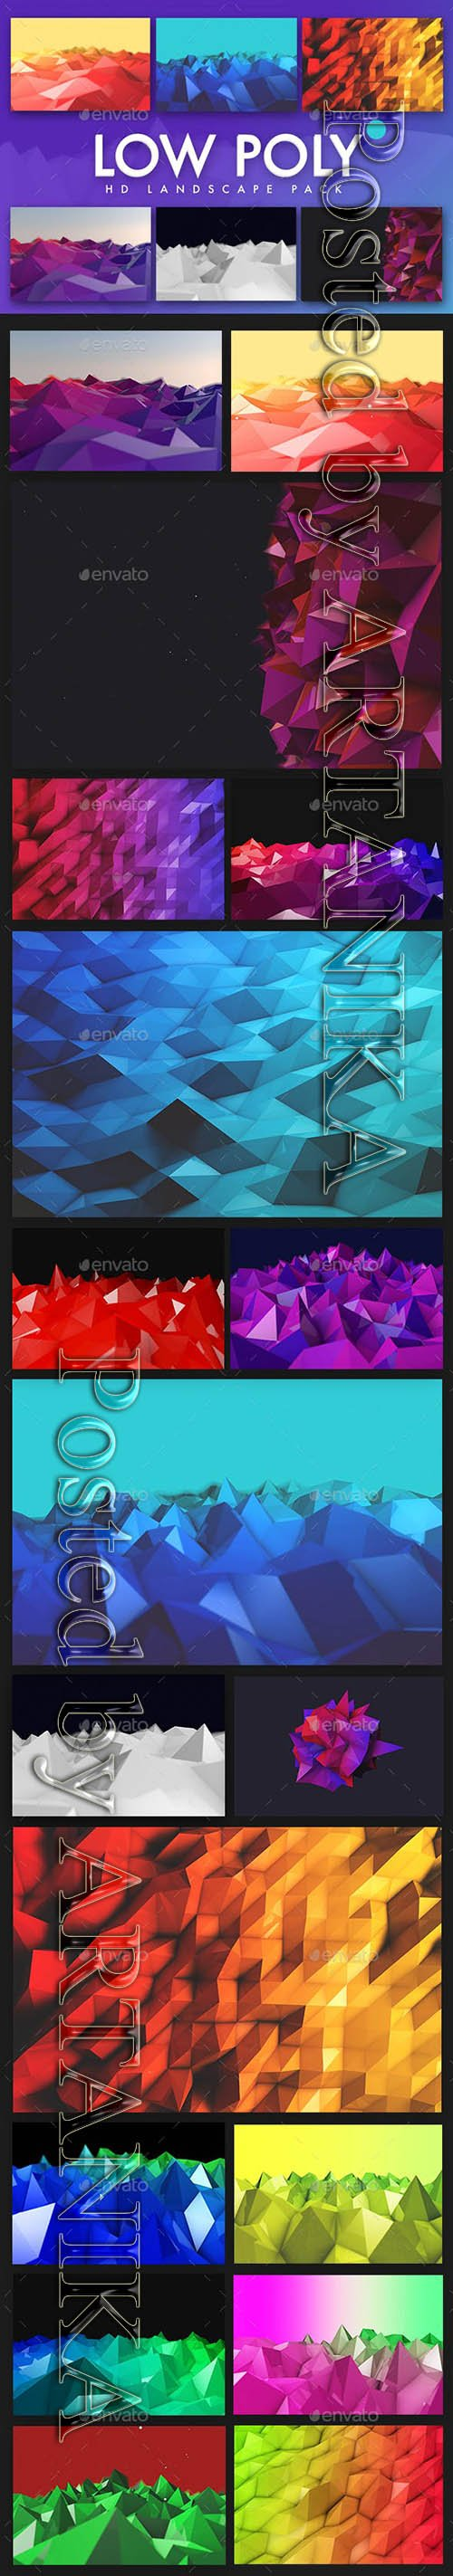 GraphicRiver - Low Poly Landscapes Backgrounds 19000294